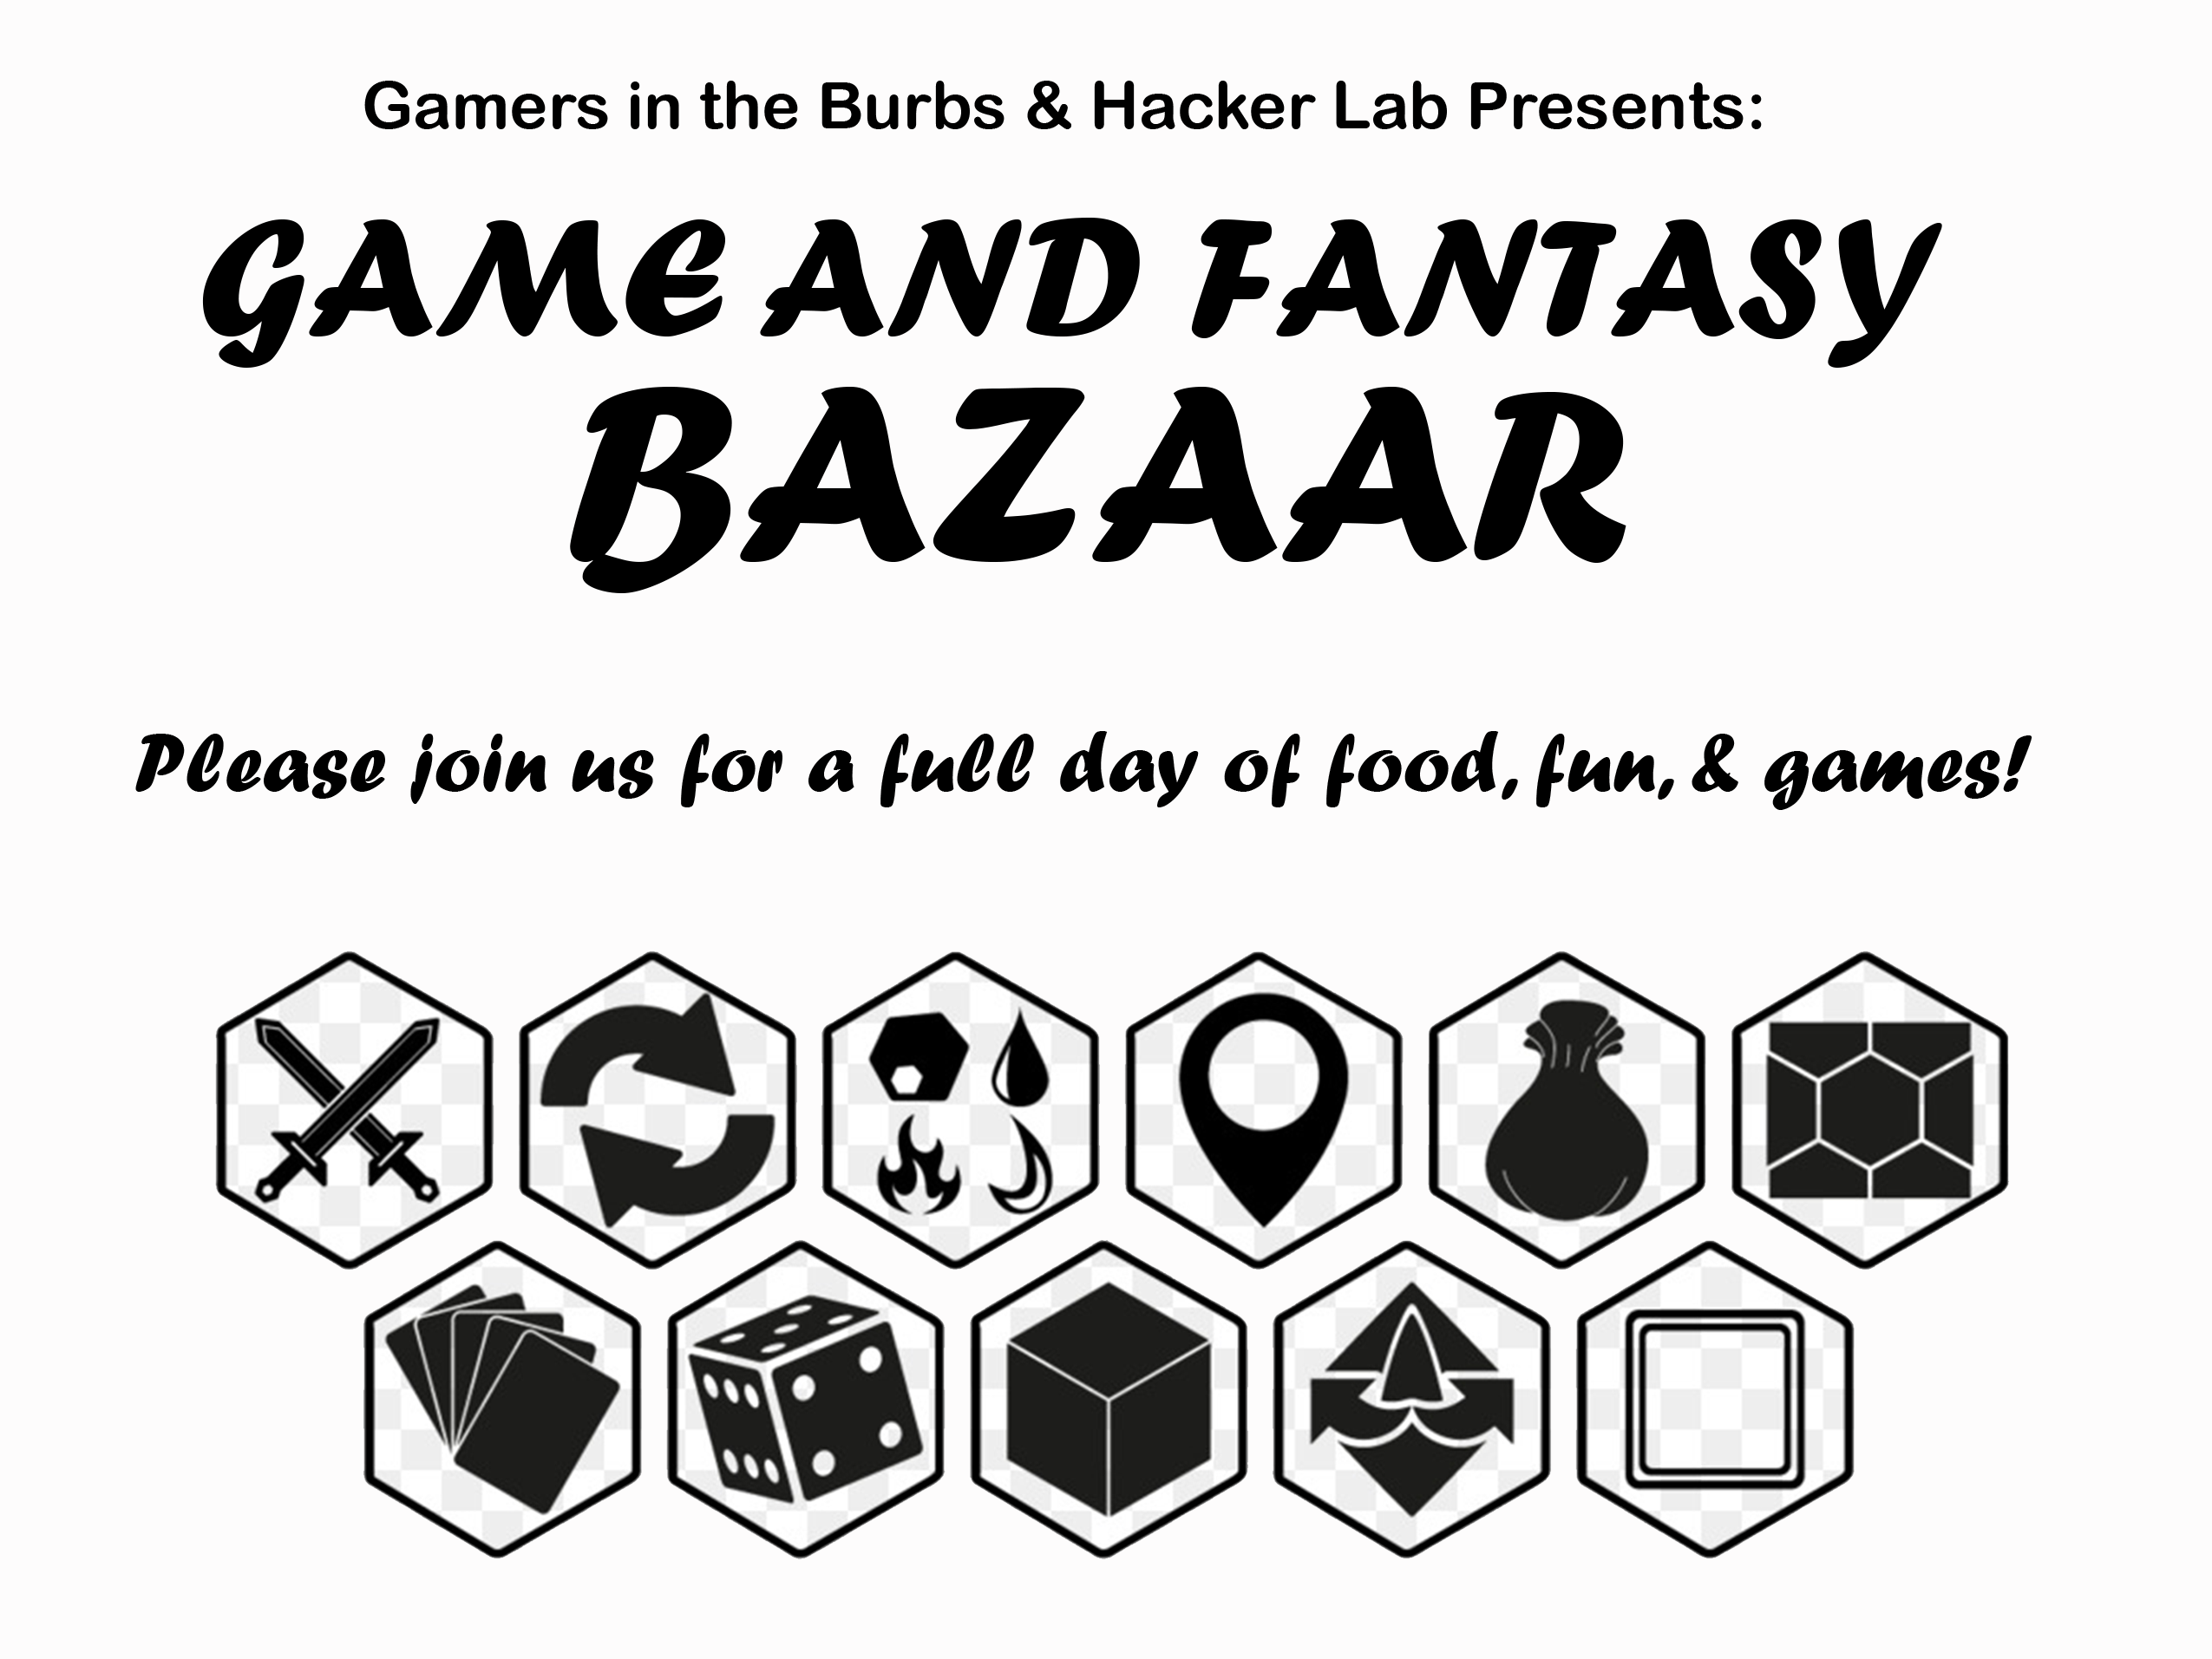 CANCELLED: Gamers in the Burbs